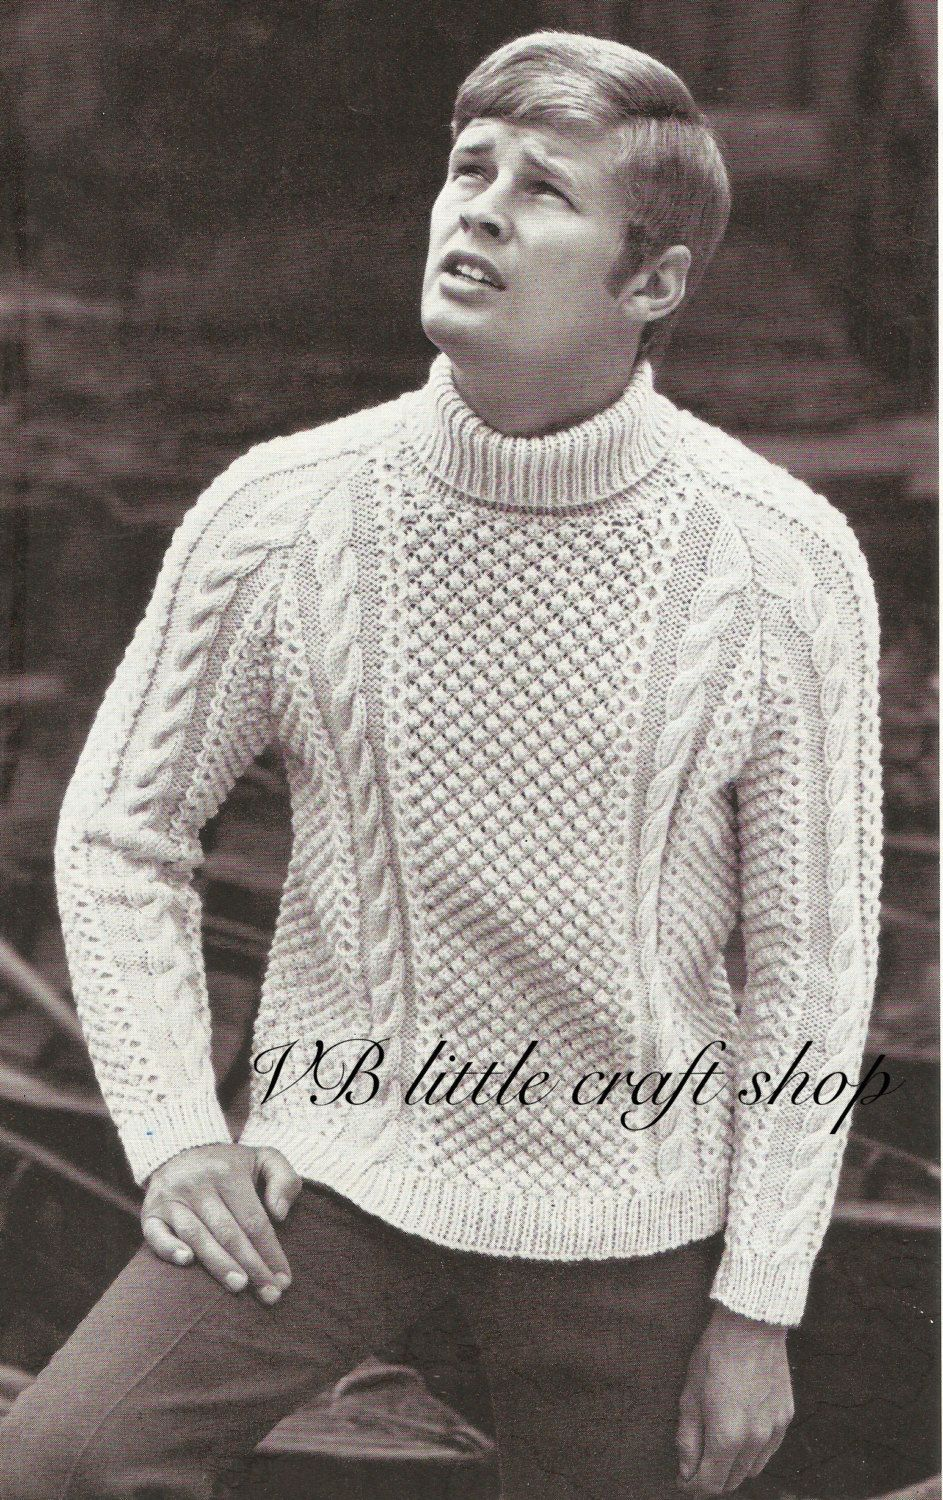 Mens aran sweater knitting pattern instant pdf download by mens aran sweater knitting pattern instant pdf download by vblittlecraftshop on etsy bankloansurffo Gallery